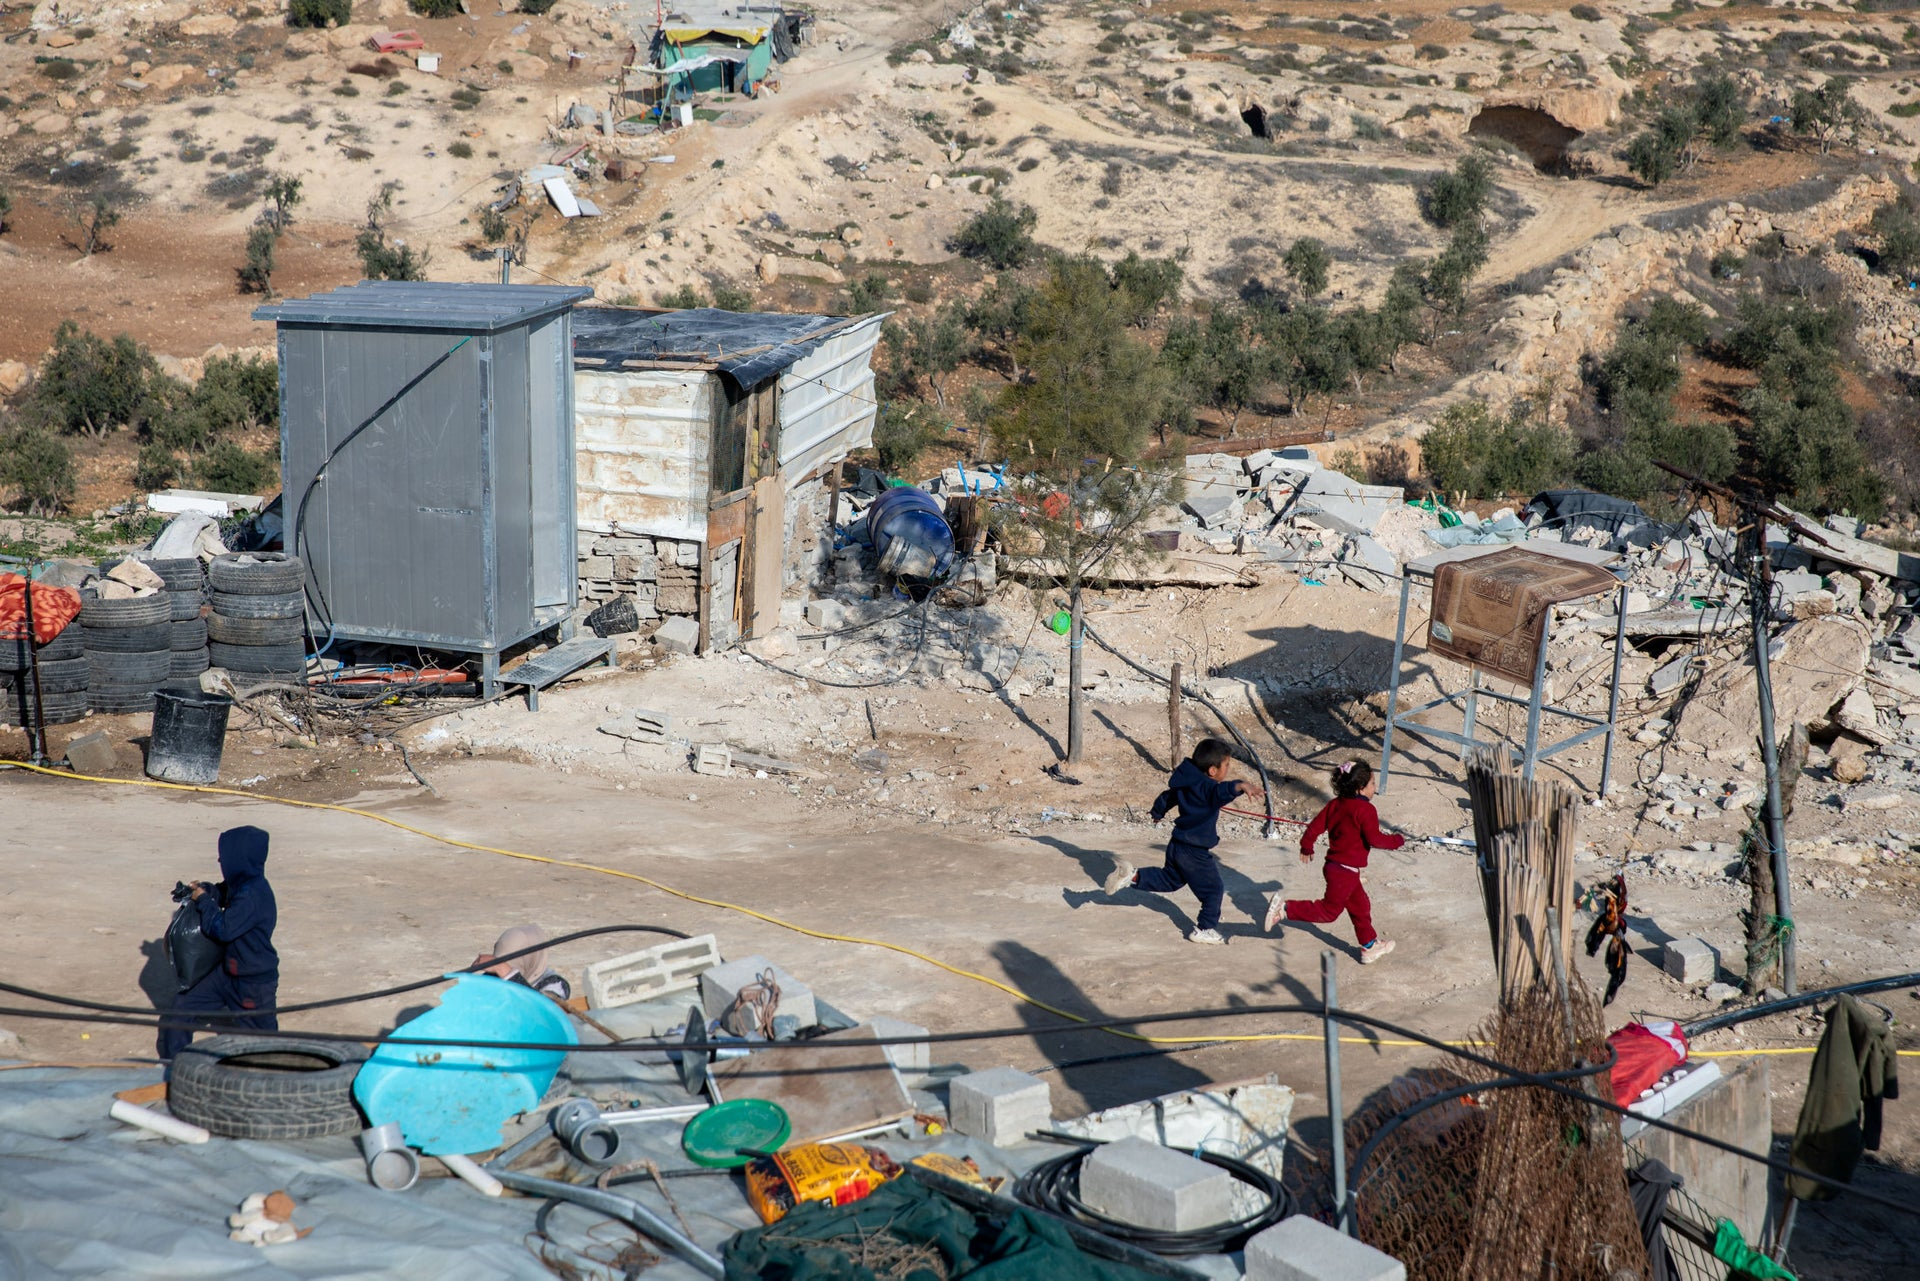 Children walk in the village of Khirbet al-Rakiz.